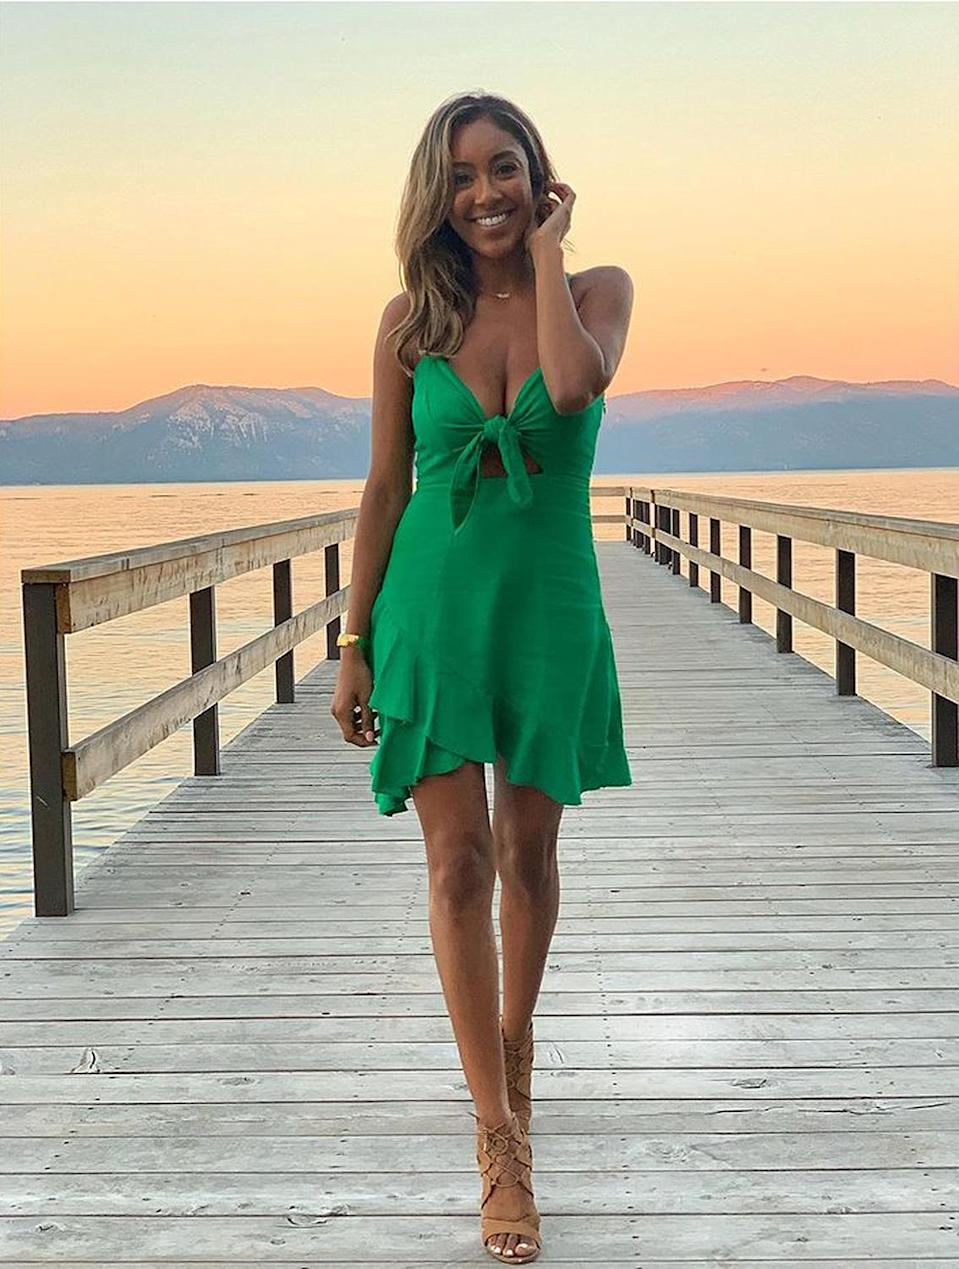 """<p>Before she was <a href=""""https://people.com/tv/bachelorette-tayshia-adams-on-finding-her-person-in-fiance-zac-clark/"""" rel=""""nofollow noopener"""" target=""""_blank"""" data-ylk=""""slk:engaged to Zac Clarke"""" class=""""link rapid-noclick-resp"""">engaged to Zac Clarke</a>, this <em>Bachelorette</em> was posing solo in Tahoe! """"Dreamy Lake Sunsets,"""" the California-native captioned <a href=""""https://www.instagram.com/p/B0NDgKIFUO4/?hl=en"""" rel=""""nofollow noopener"""" target=""""_blank"""" data-ylk=""""slk:this photo"""" class=""""link rapid-noclick-resp"""">this photo</a> from summer 2019. </p>"""